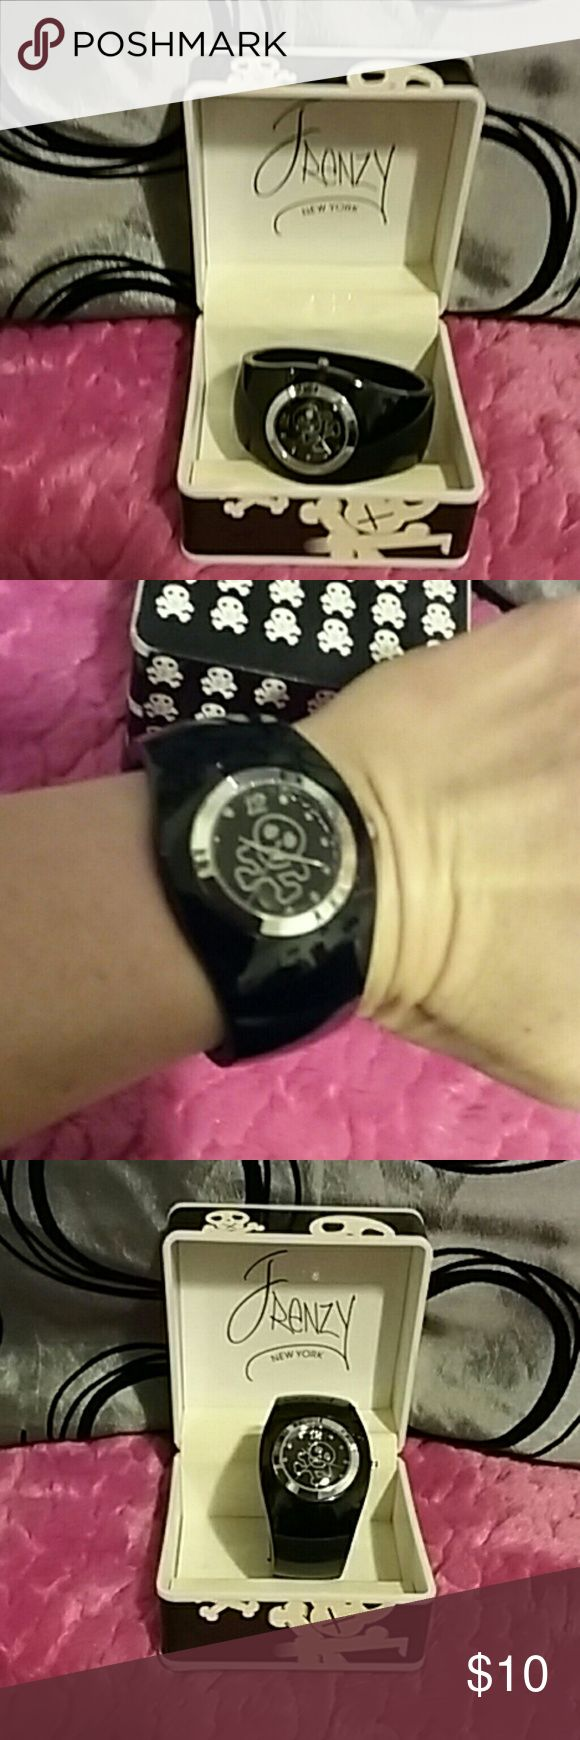 Frenzy Black Skulls and Crossbones Cuff  Watch Frenzy new York black cuff wrap around watch, comes in original case, has skull and cross bones on face of watch and on watch box, cuff is opens up a little bit to wrist on watch, will fit someone with a small to medium wrist, on cuff has a small scratch which can see in last pic, comes with working battery, very stylish and rocker style watch, has always been kept on original box, just see number 6 and 12 and rest of numbers is dots on the…